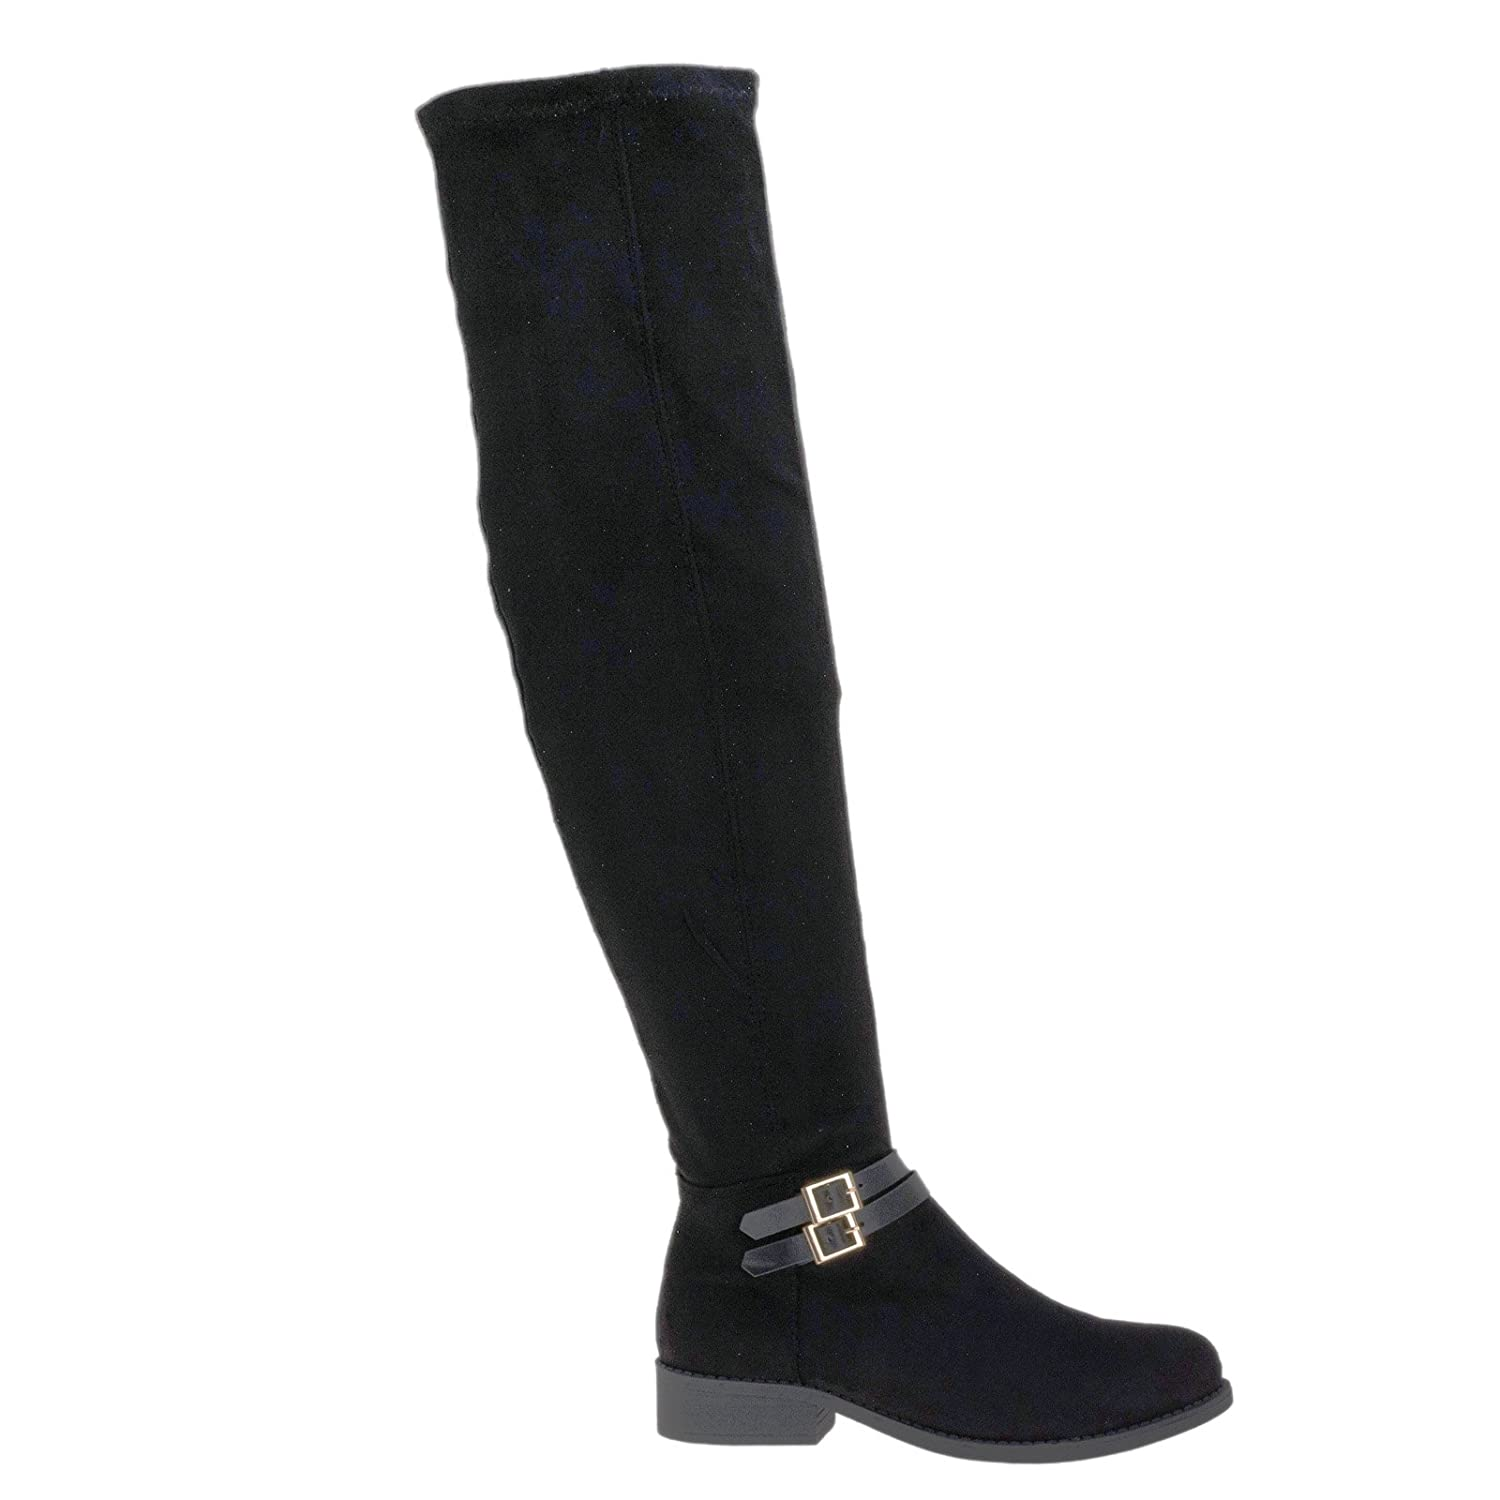 Biker / Riding Inspired Over The Knee Boots w Stack Heel & Wraparound Buckle Strap